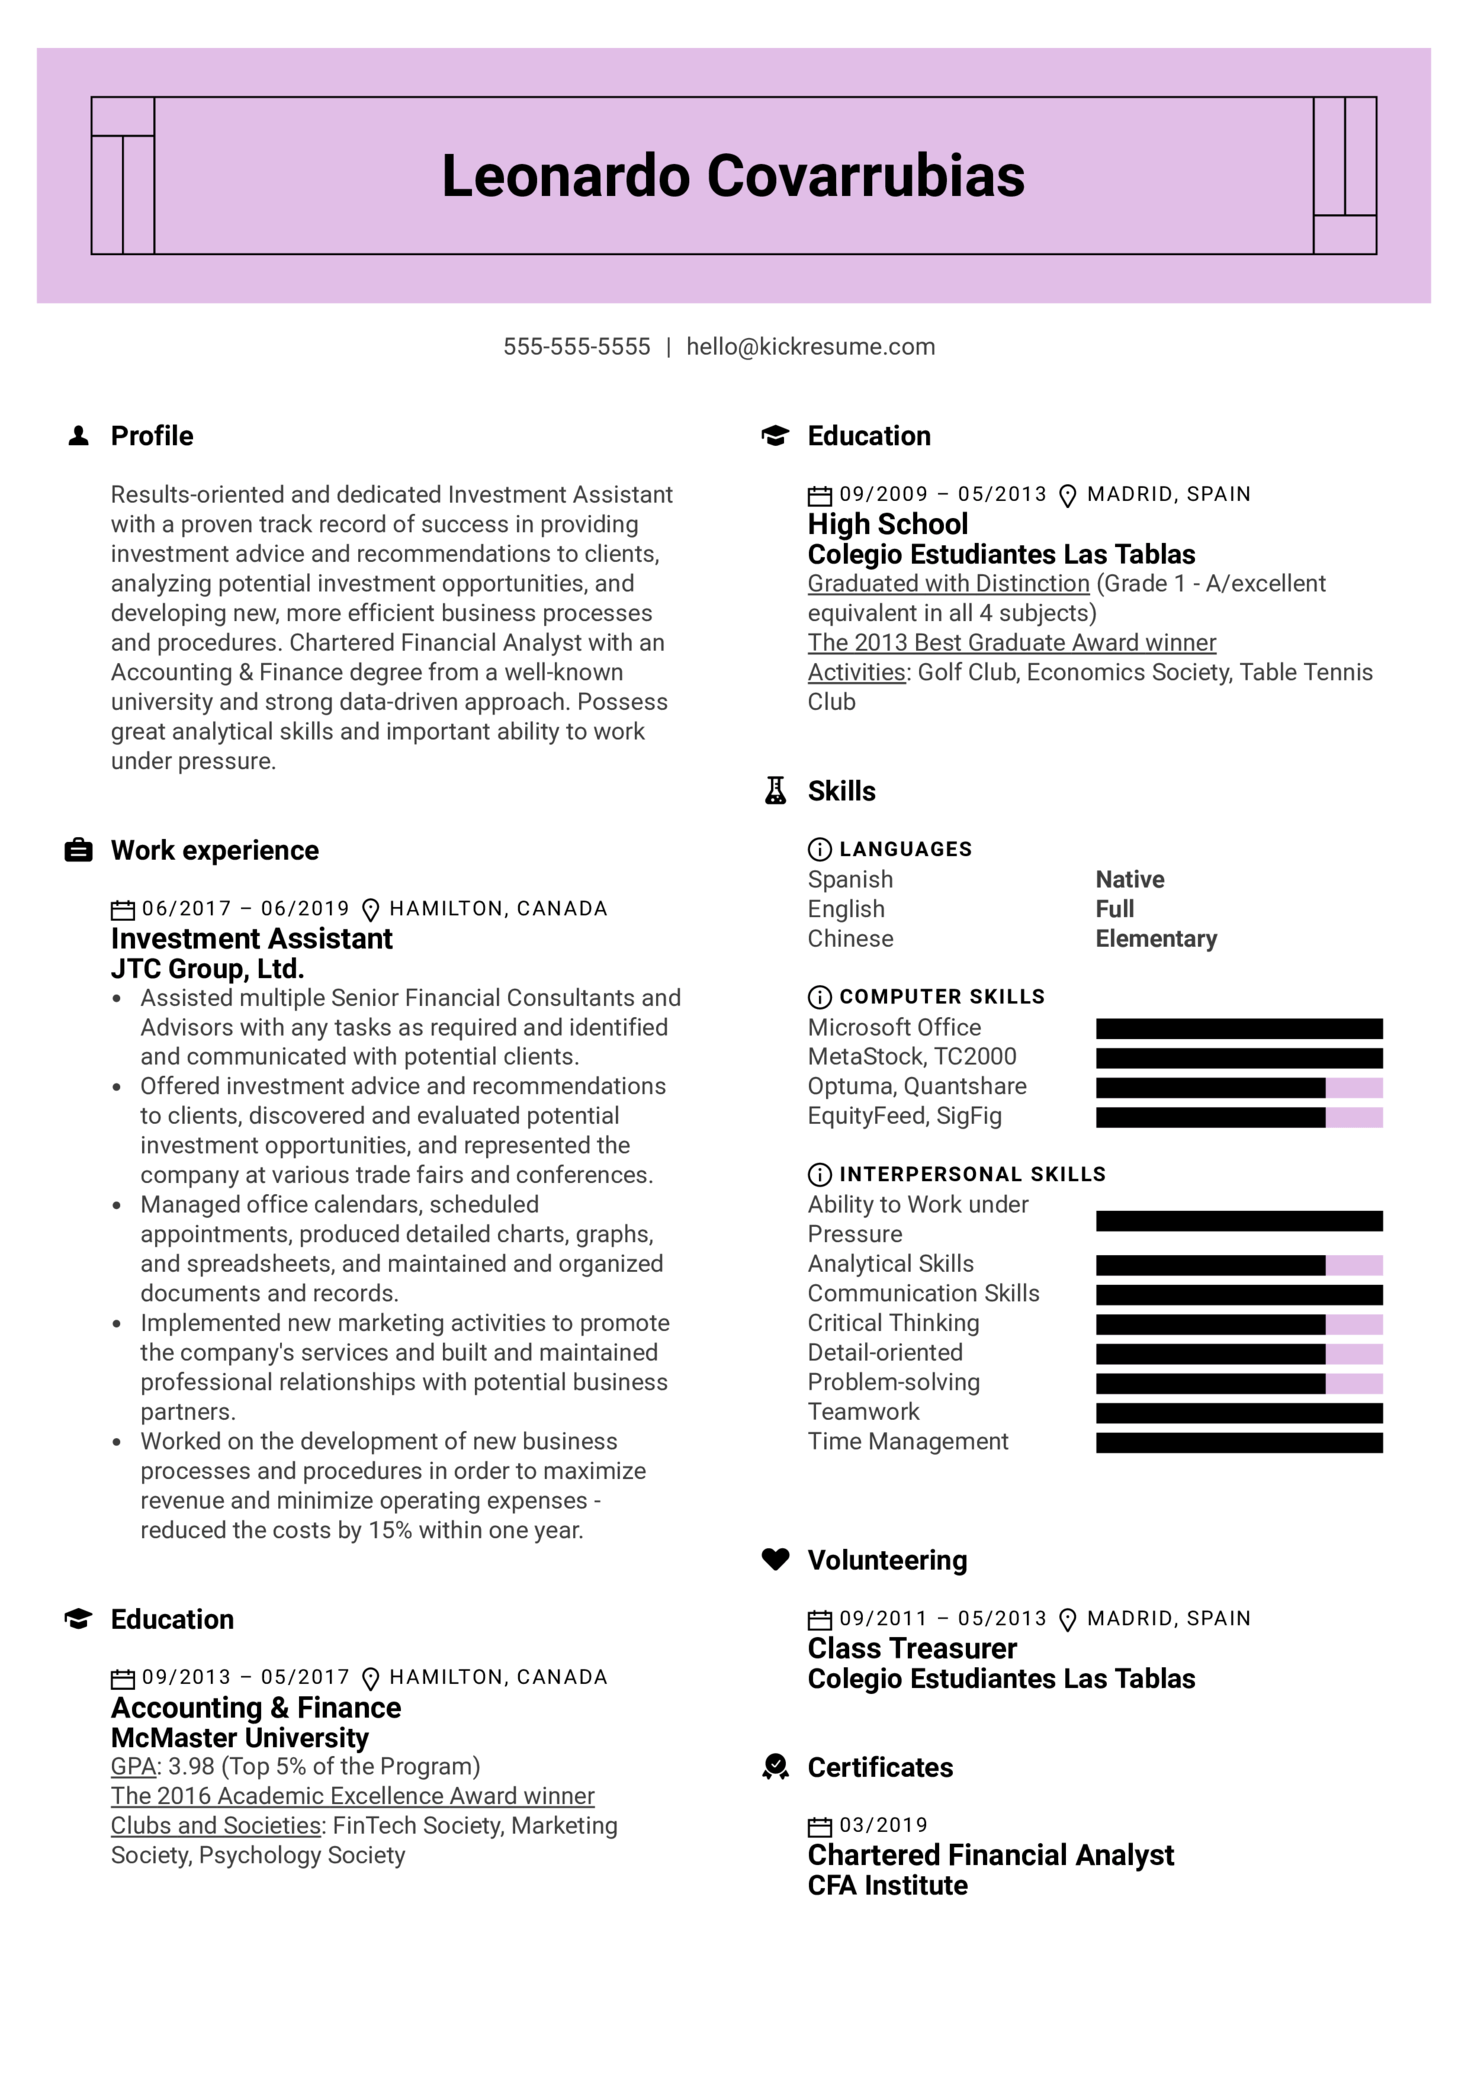 Investment Assistant Resume Sample (parte 1)